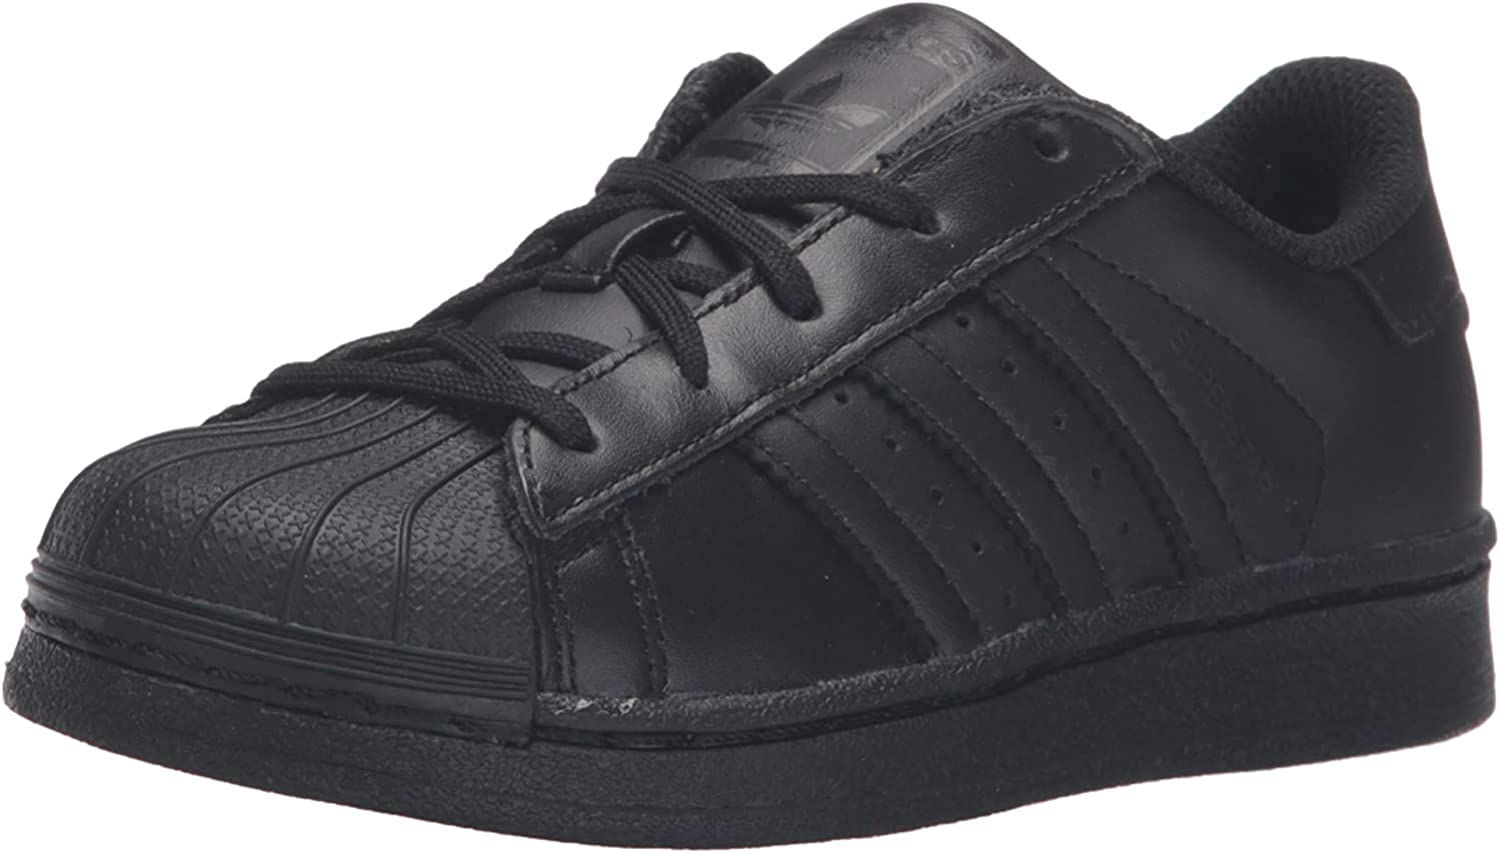 adidas Originals Superstar, Basket Mixte Enfant Noir Core Black Core Black